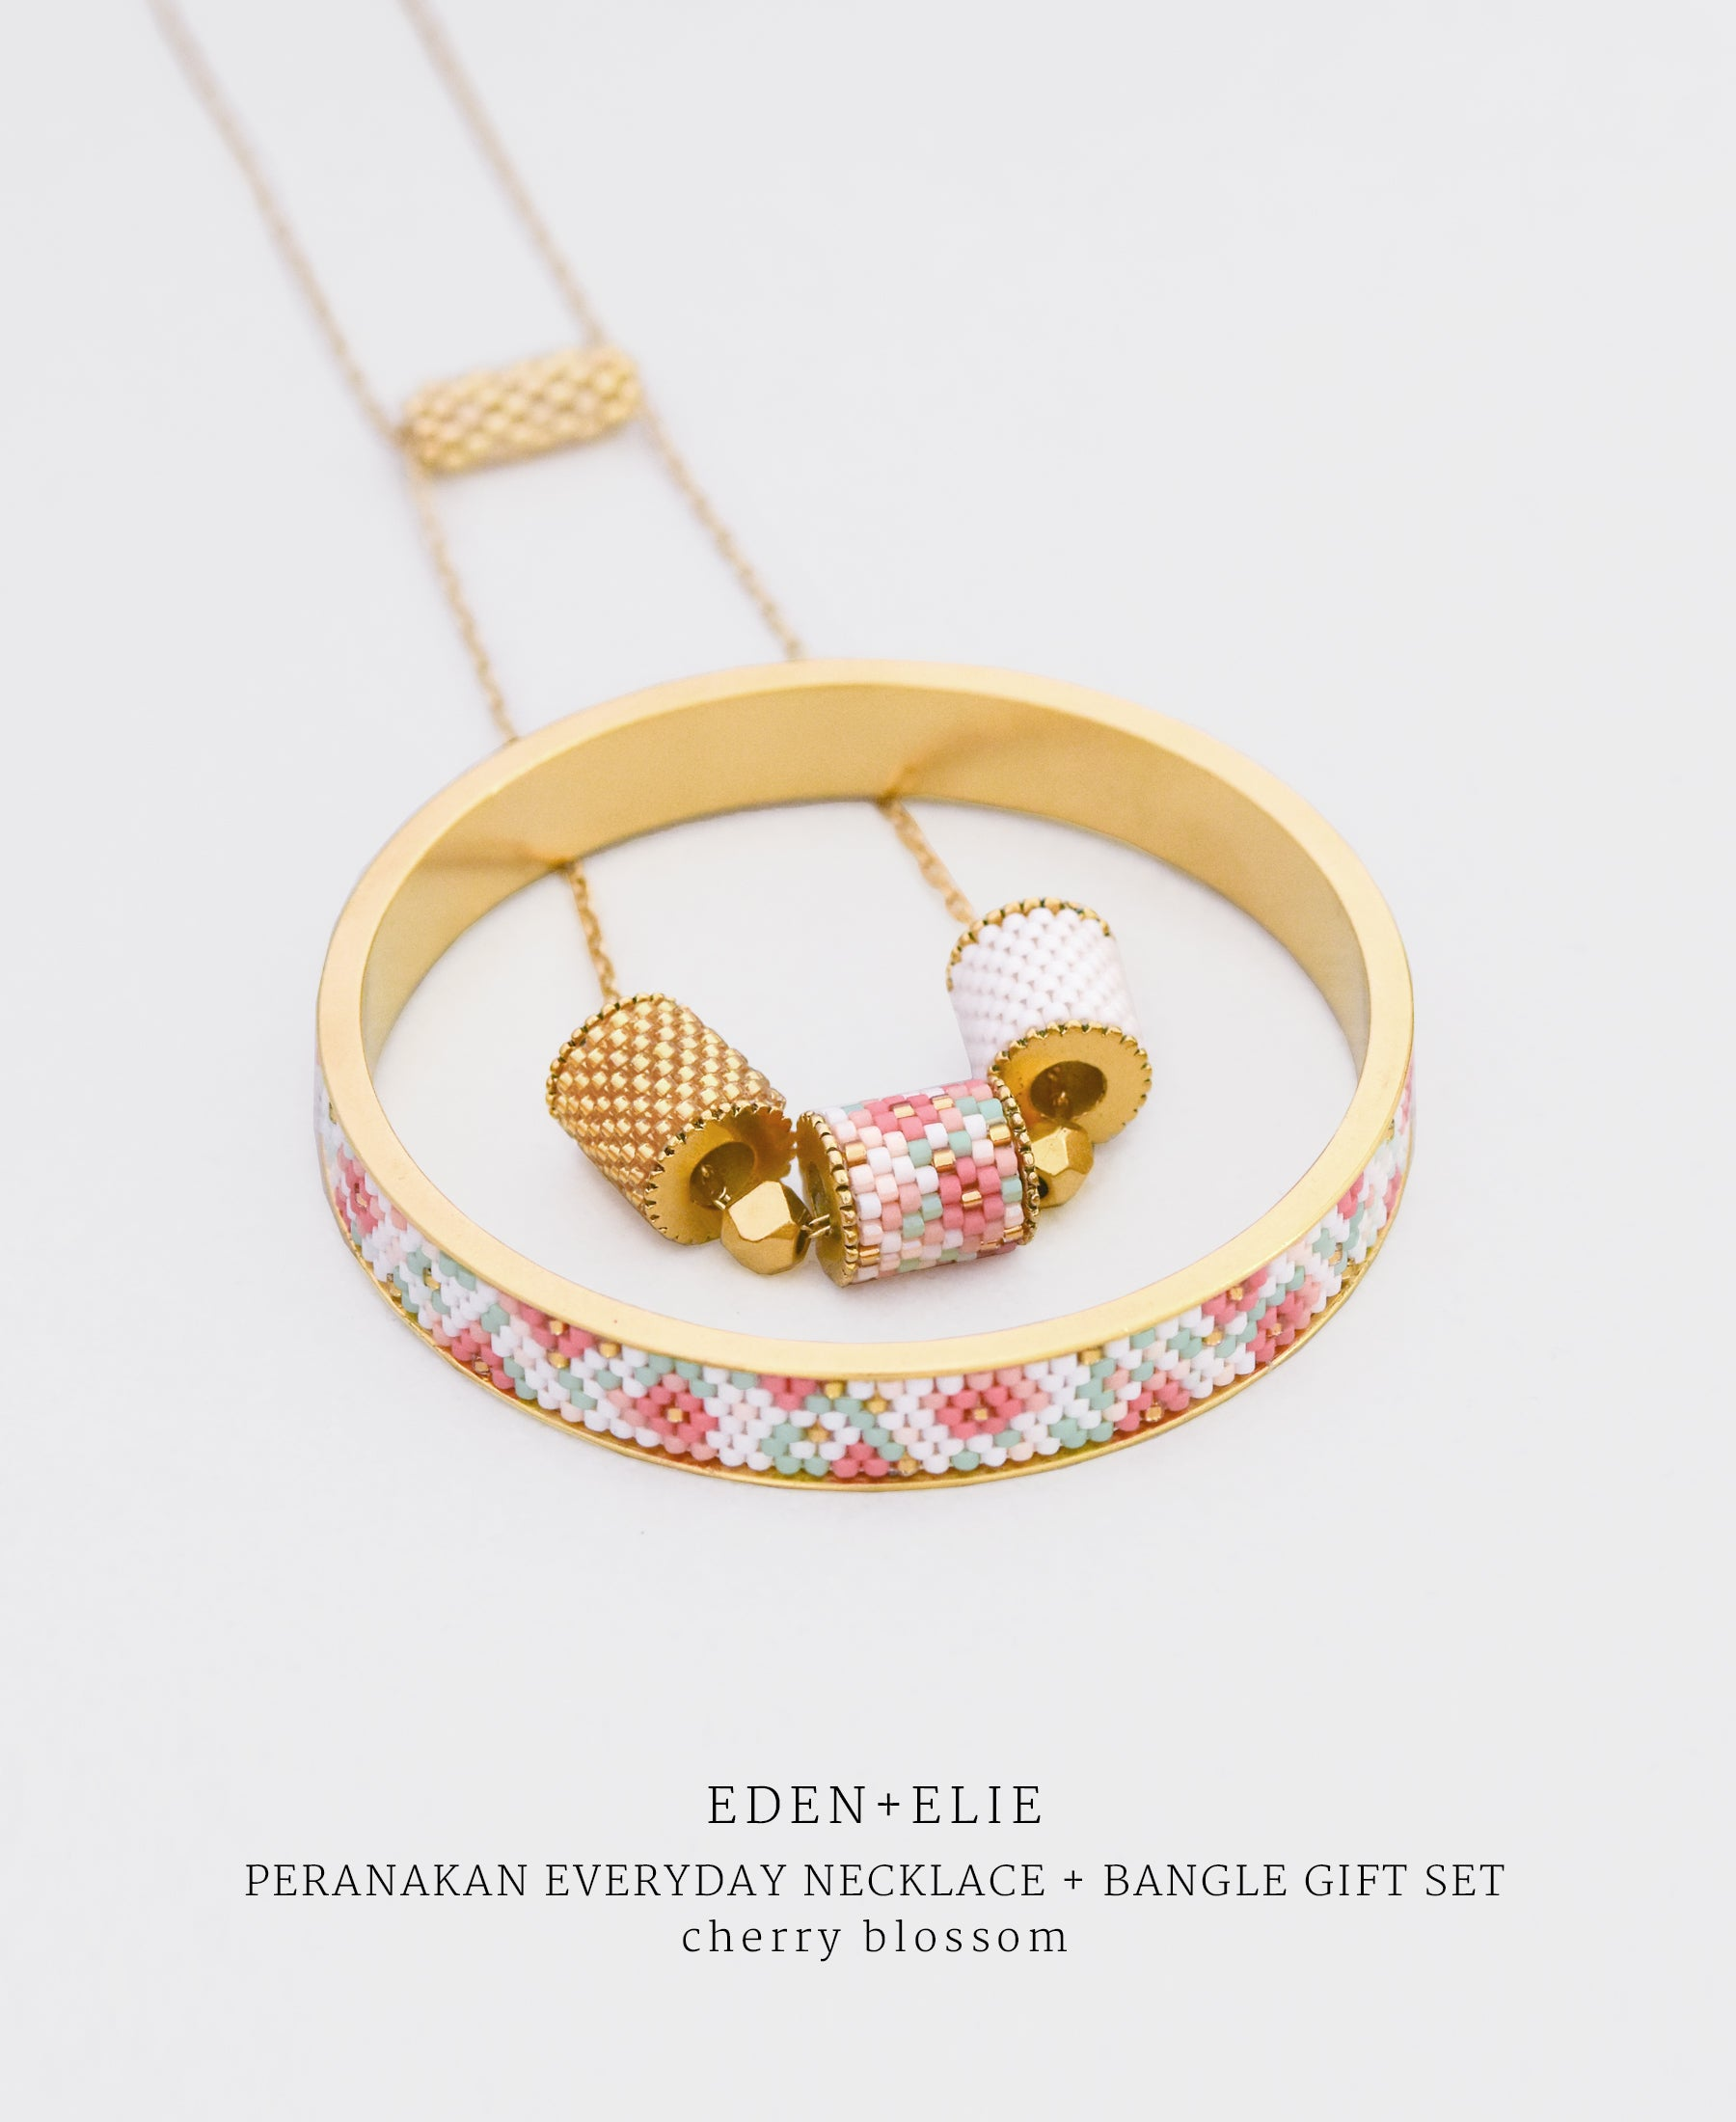 EDEN + ELIE Modern Peranakan adjustable length necklace + bangle gift set - cherry blossom